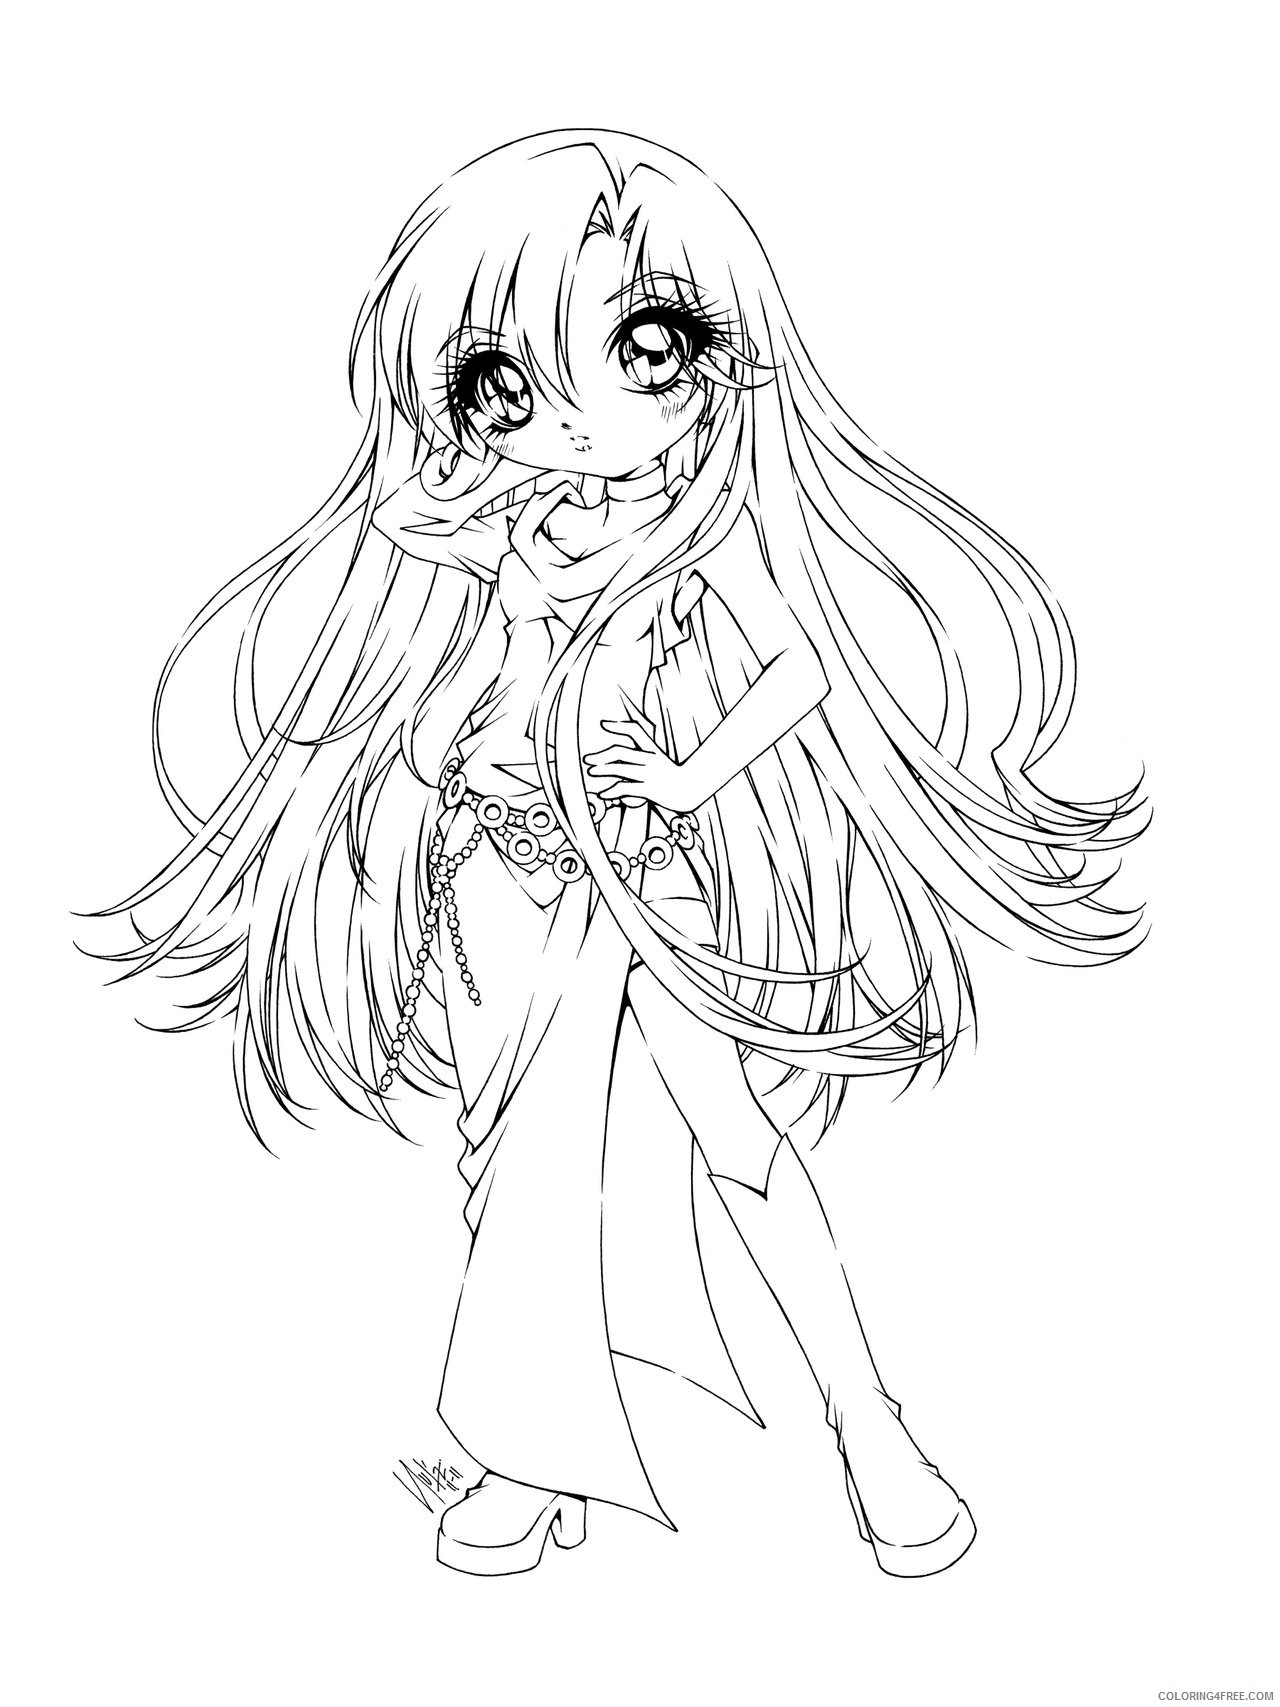 manga coloring pages to print Coloring4free